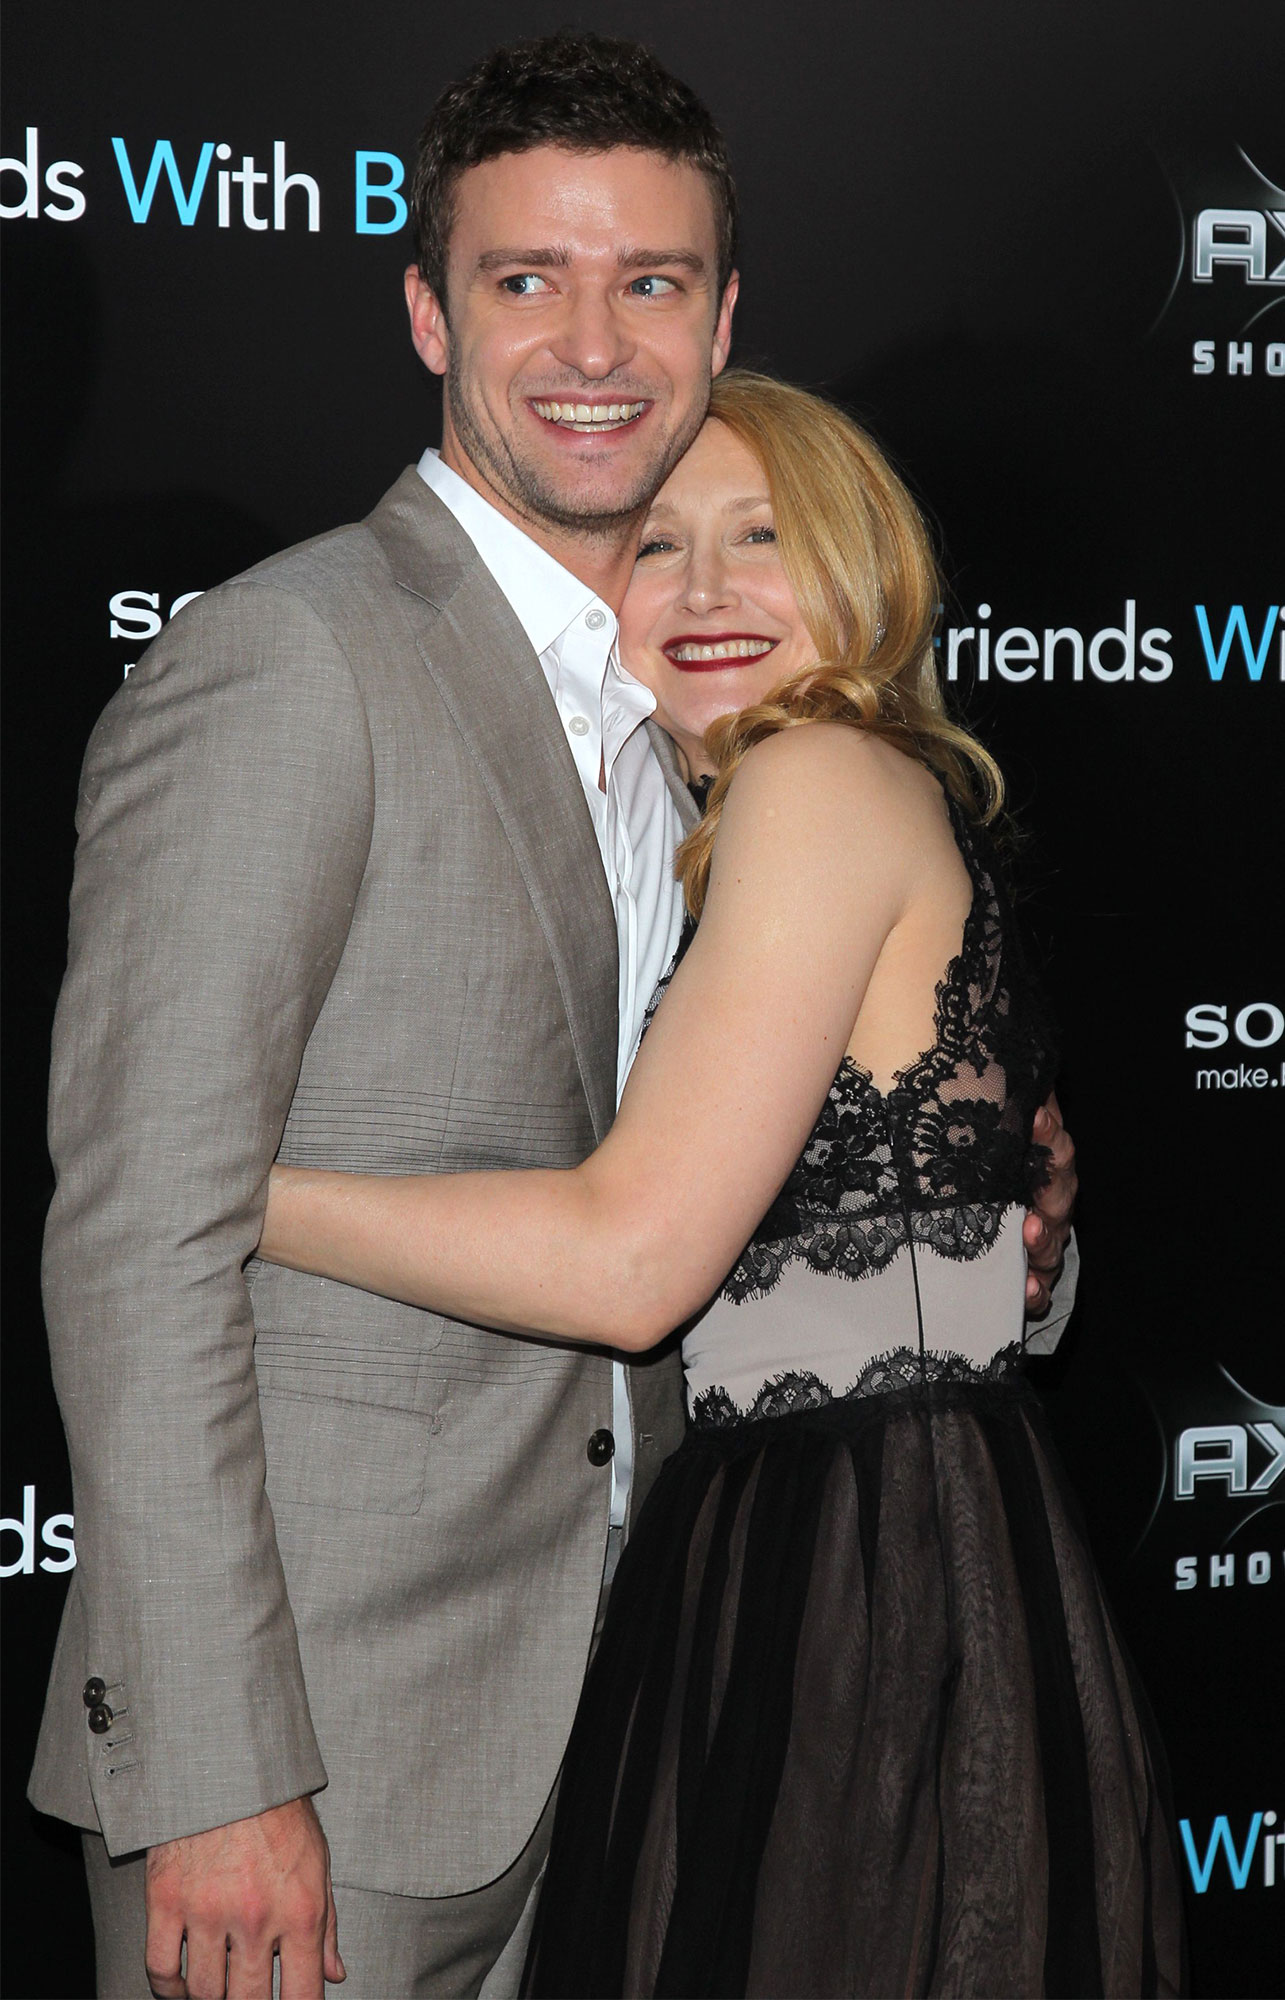 TCS Friends With Benefits Screening, New York